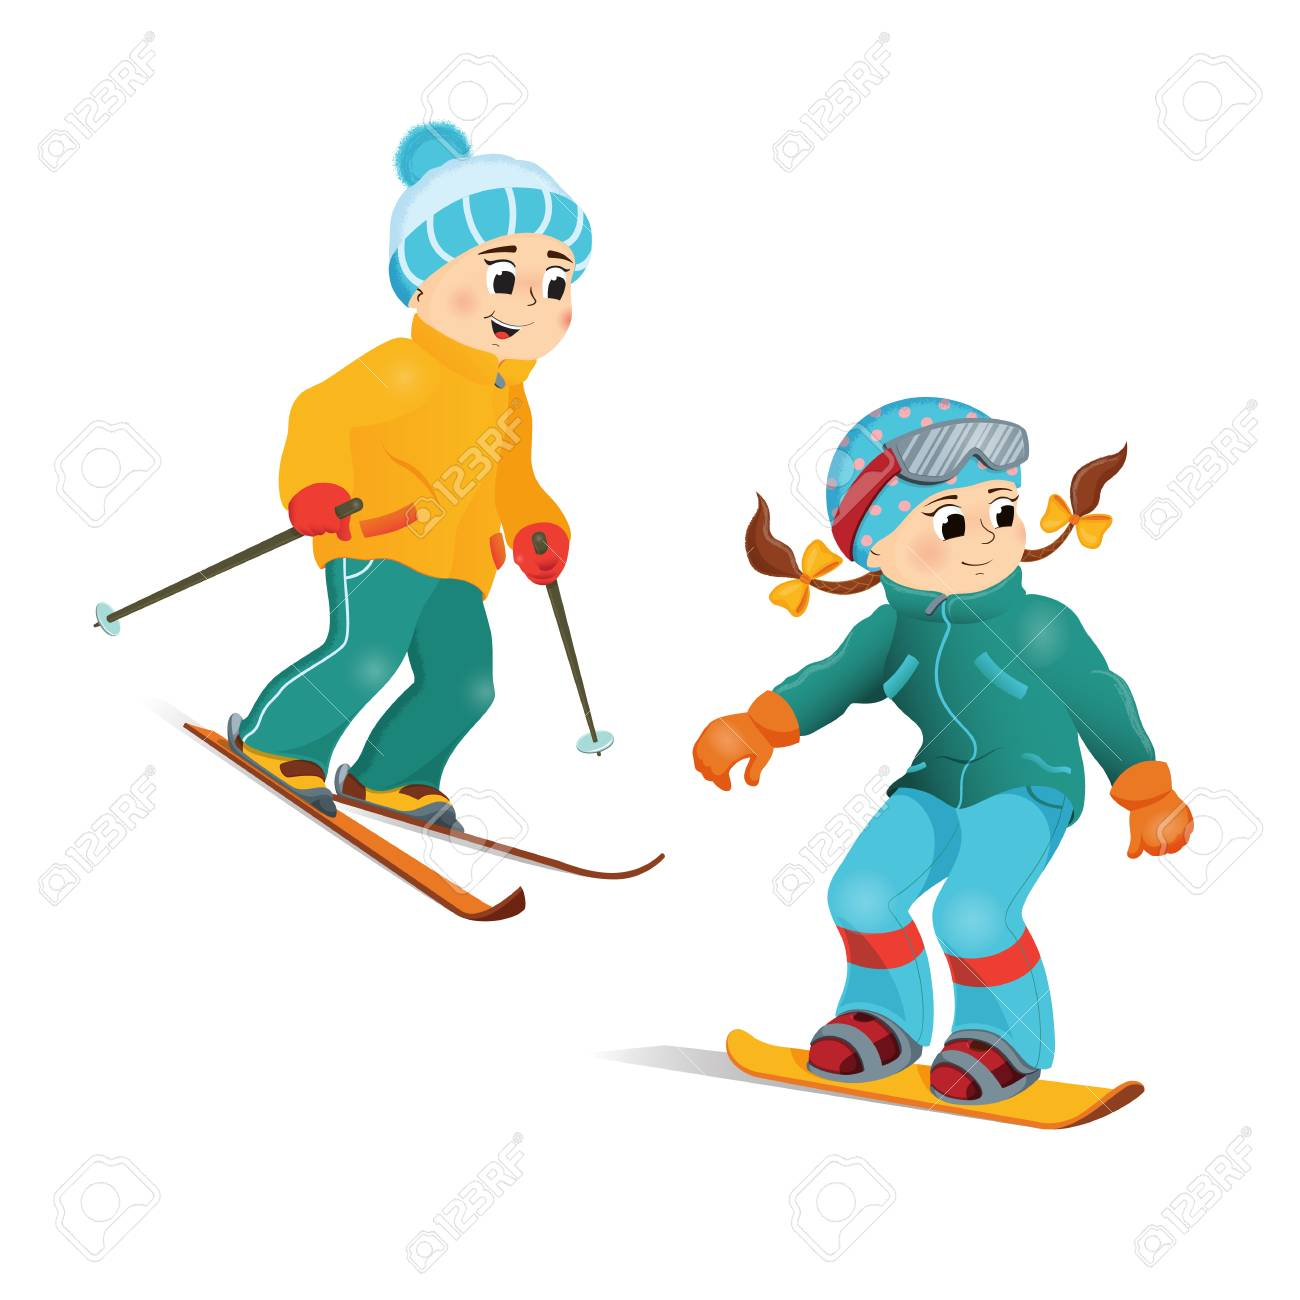 Happy Smiling Boy In Warm Clothes Skiing Downhill Winter Sport Activity Retro Style